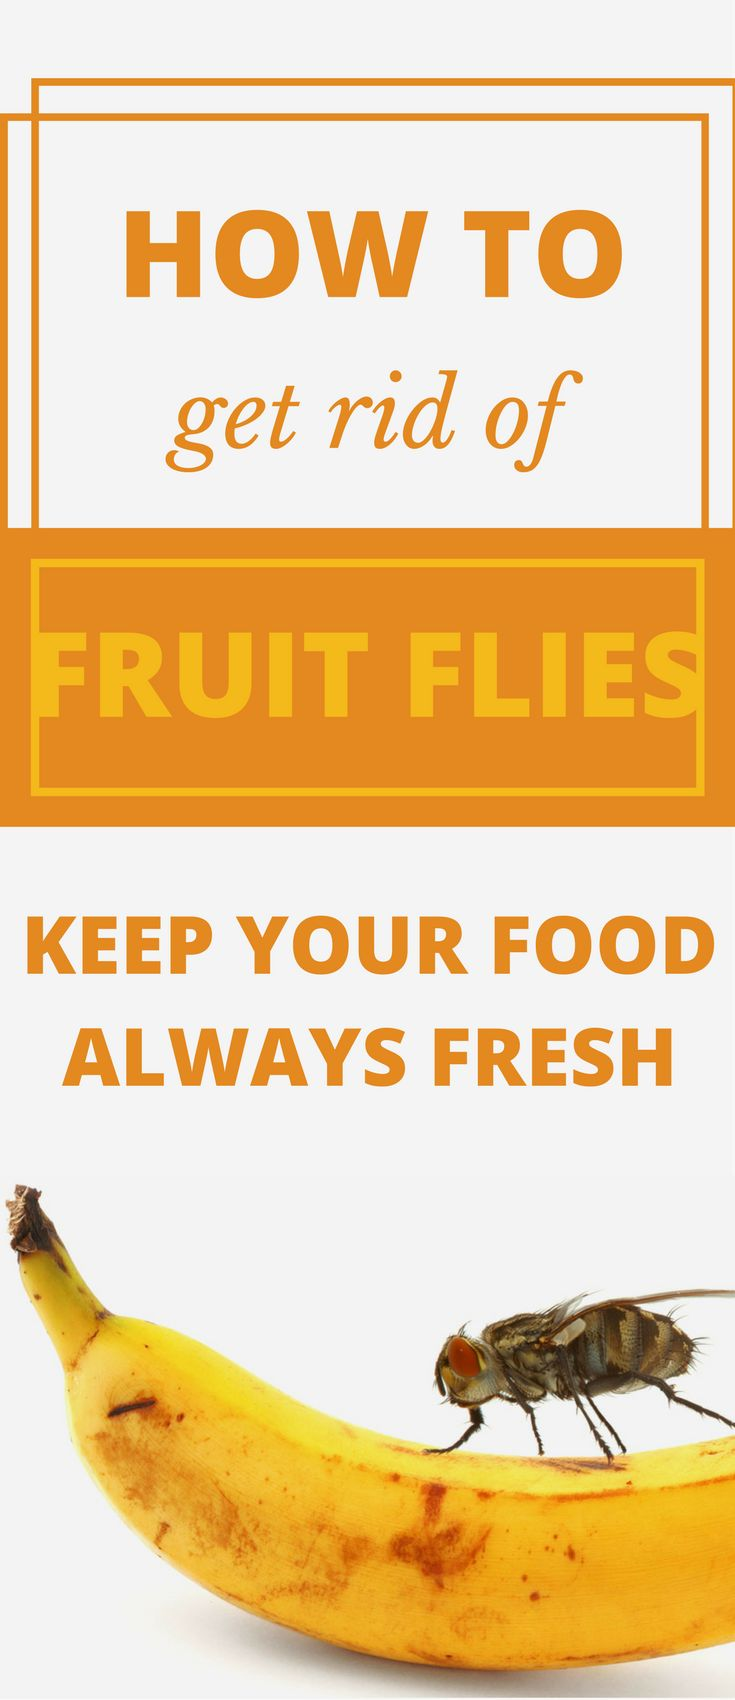 Fruit flies occur regardless of the season or period of the year. Here are some ways on how to get rid of fruit flies, the most unpleasant insects.